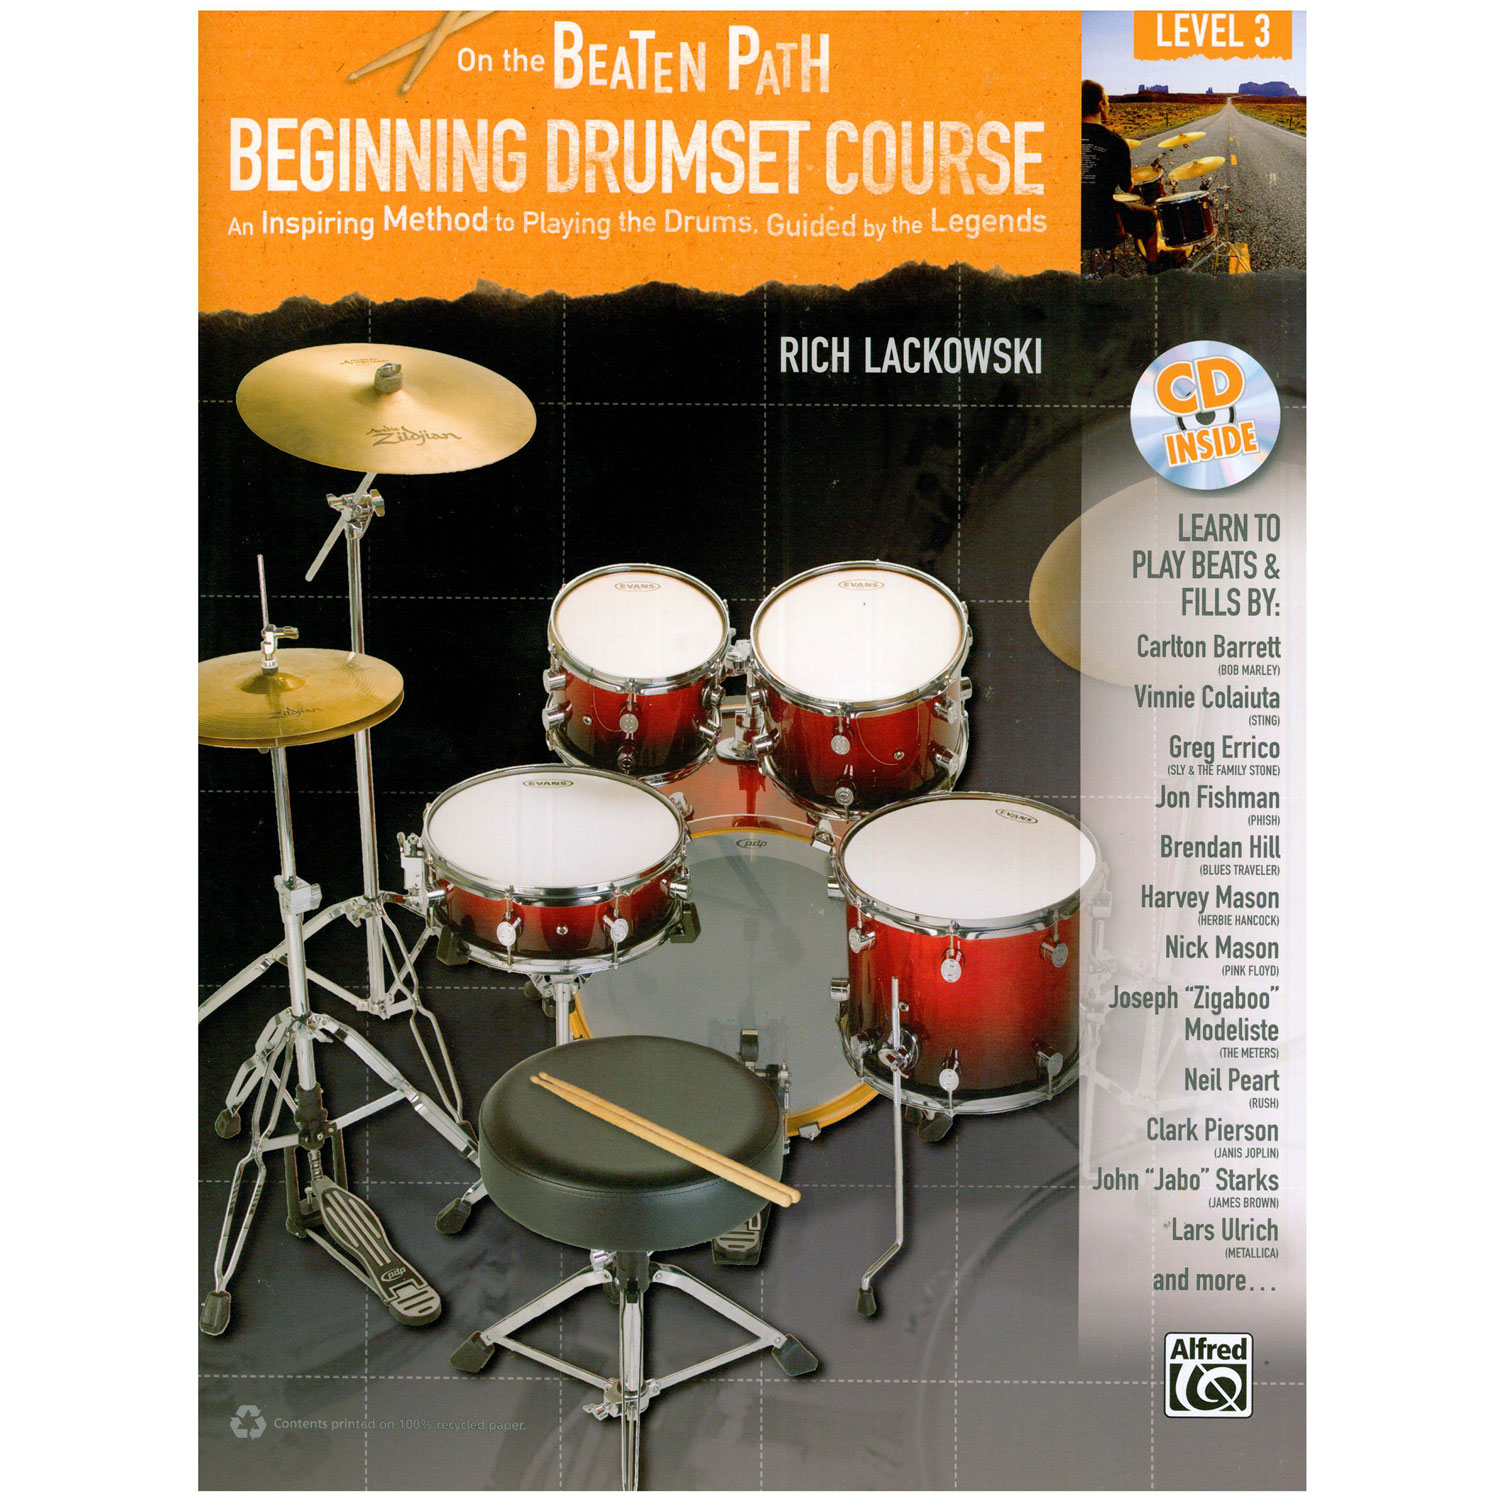 On the Beaten Path: Beginning Drum Set Course - Level 3 by Rich Lackowski